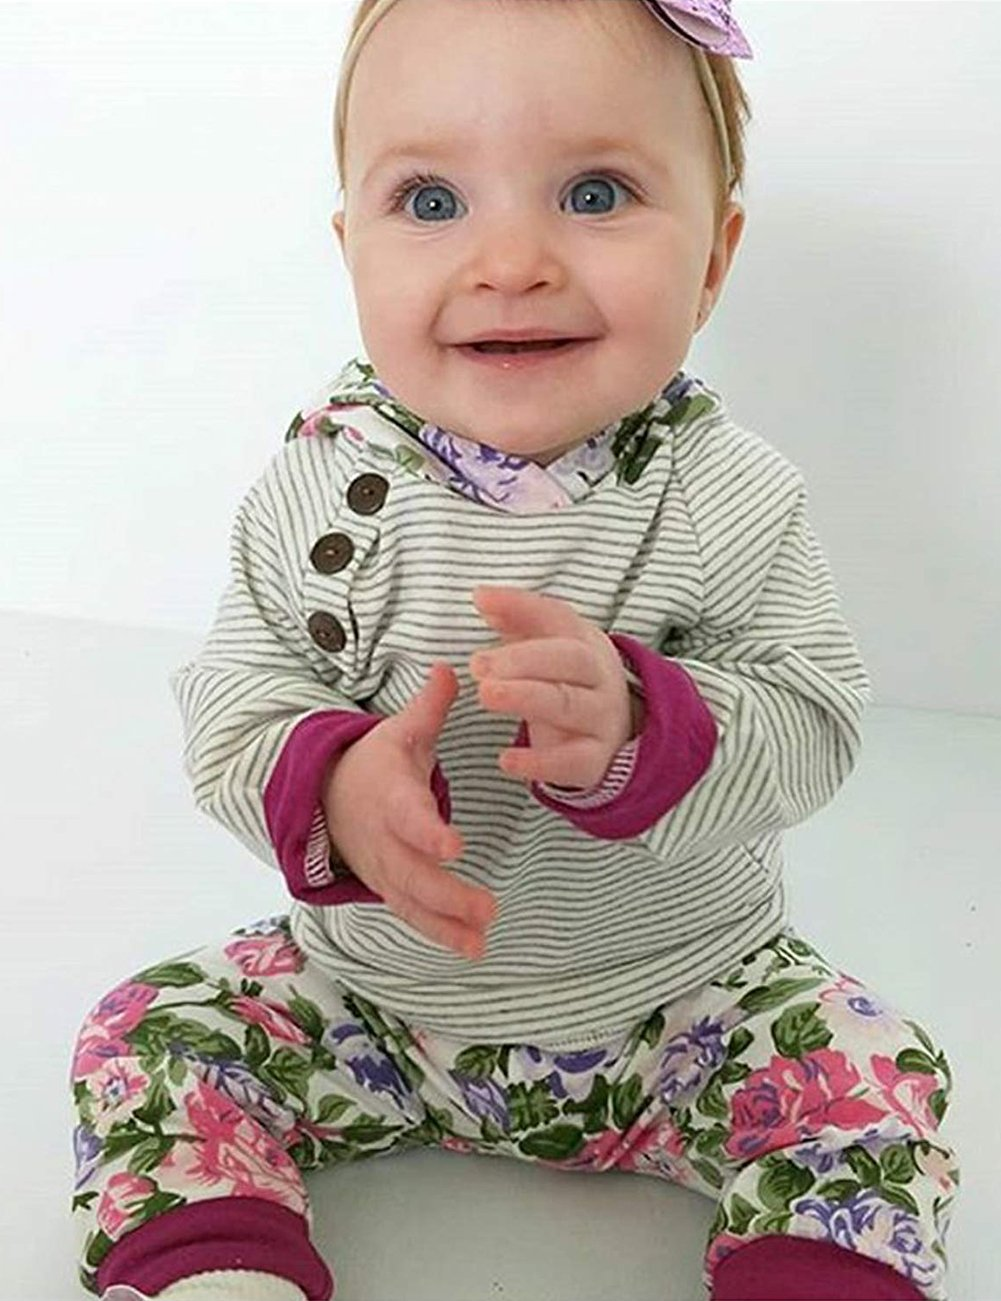 Baby Girls Long Sleeve Flowers Hoodie Tops and Pants Outfit with Kangaroo Pocket Headband (0-6 Months) by Oklady (Image #2)